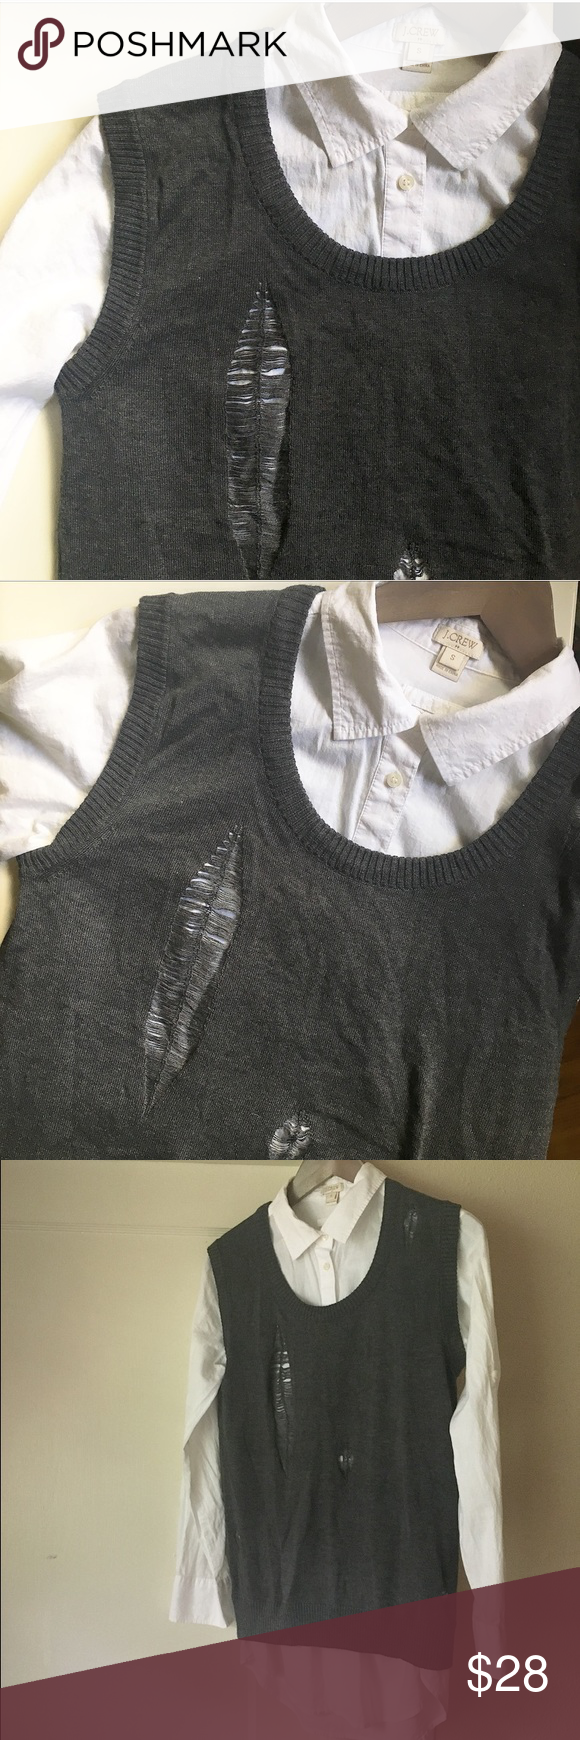 Gray Distressed Vest Charcoal gray distressed sweater vest. Four distressed spots in front - all in...